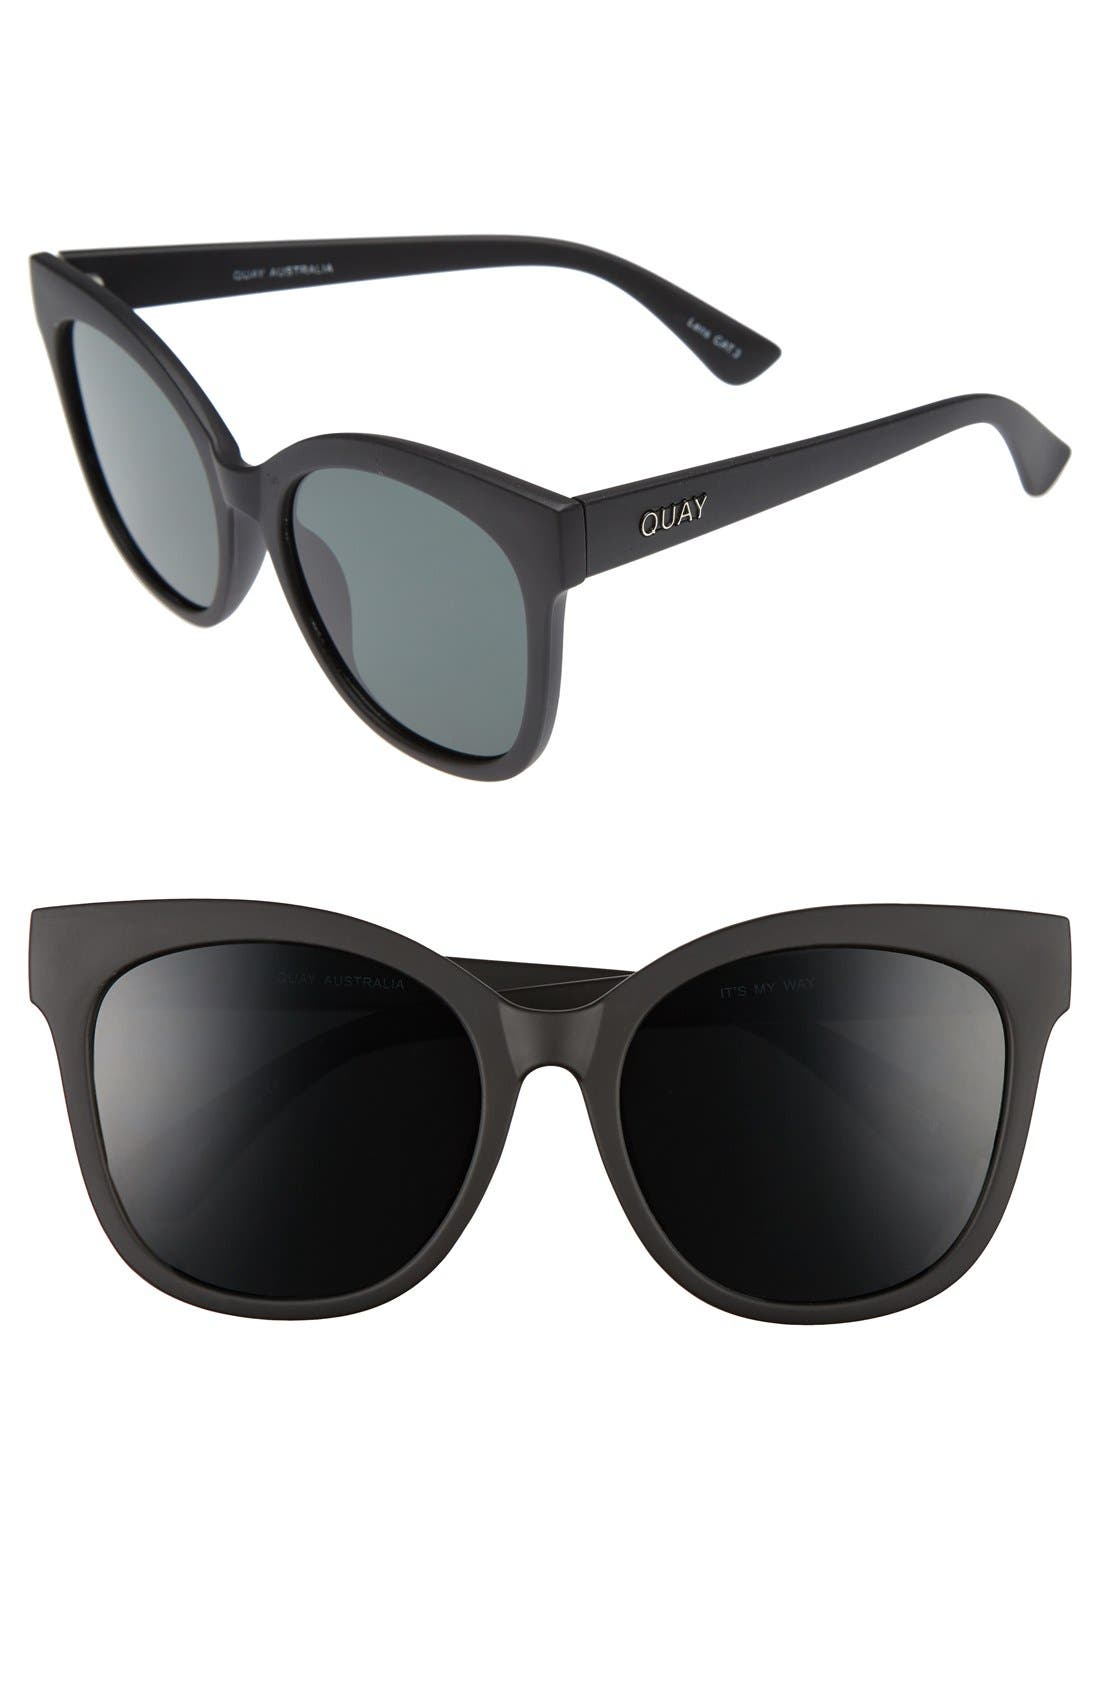 It's My Way 55mm Sunglasses,                             Main thumbnail 1, color,                             Black/ Smoke